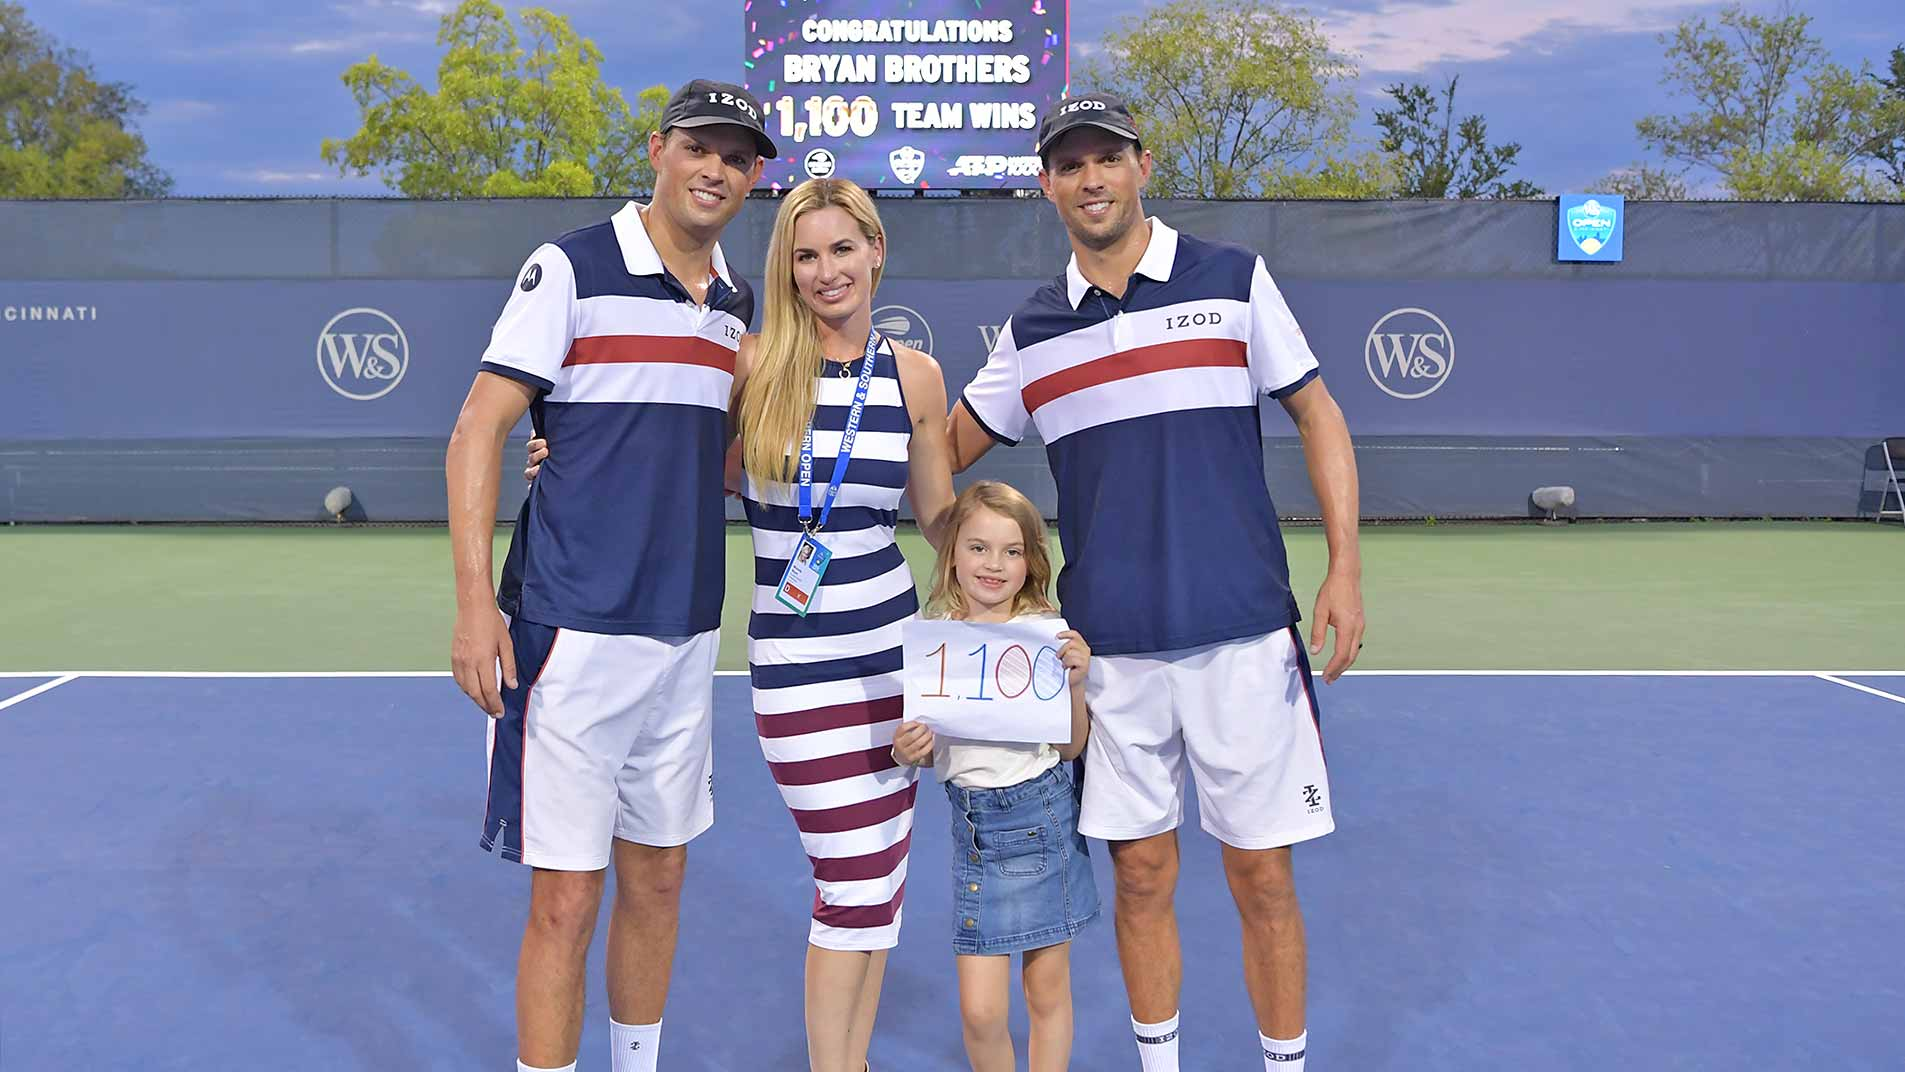 <a href='/en/players/bob-bryan/b588/overview'>Bob Bryan</a> with wife Michelle, daughter Micaela and brother <a href='/en/players/mike-bryan/b589/overview'>Mike Bryan</a>, celebrating the Bryan brothers' 1100th team win.